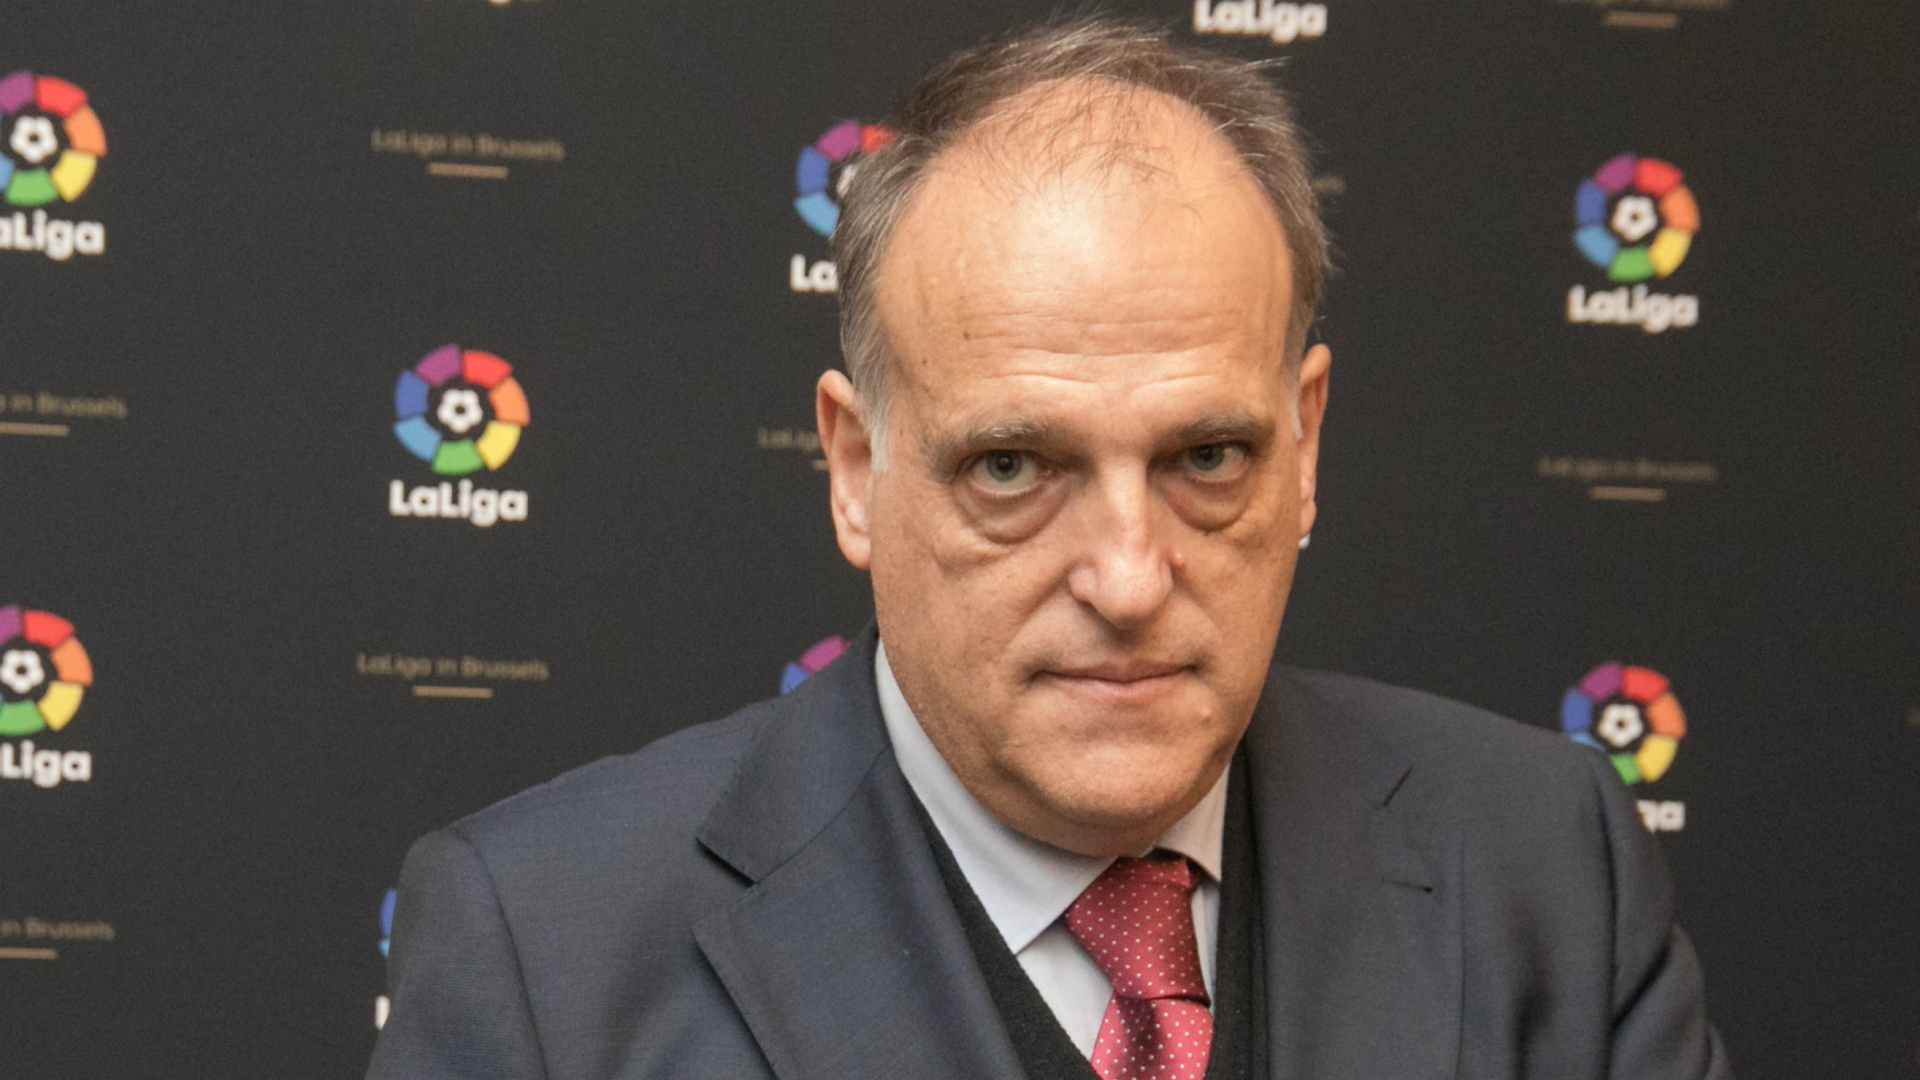 Barcelona v Real Madrid: Tebas defends early Clasico kick-off time